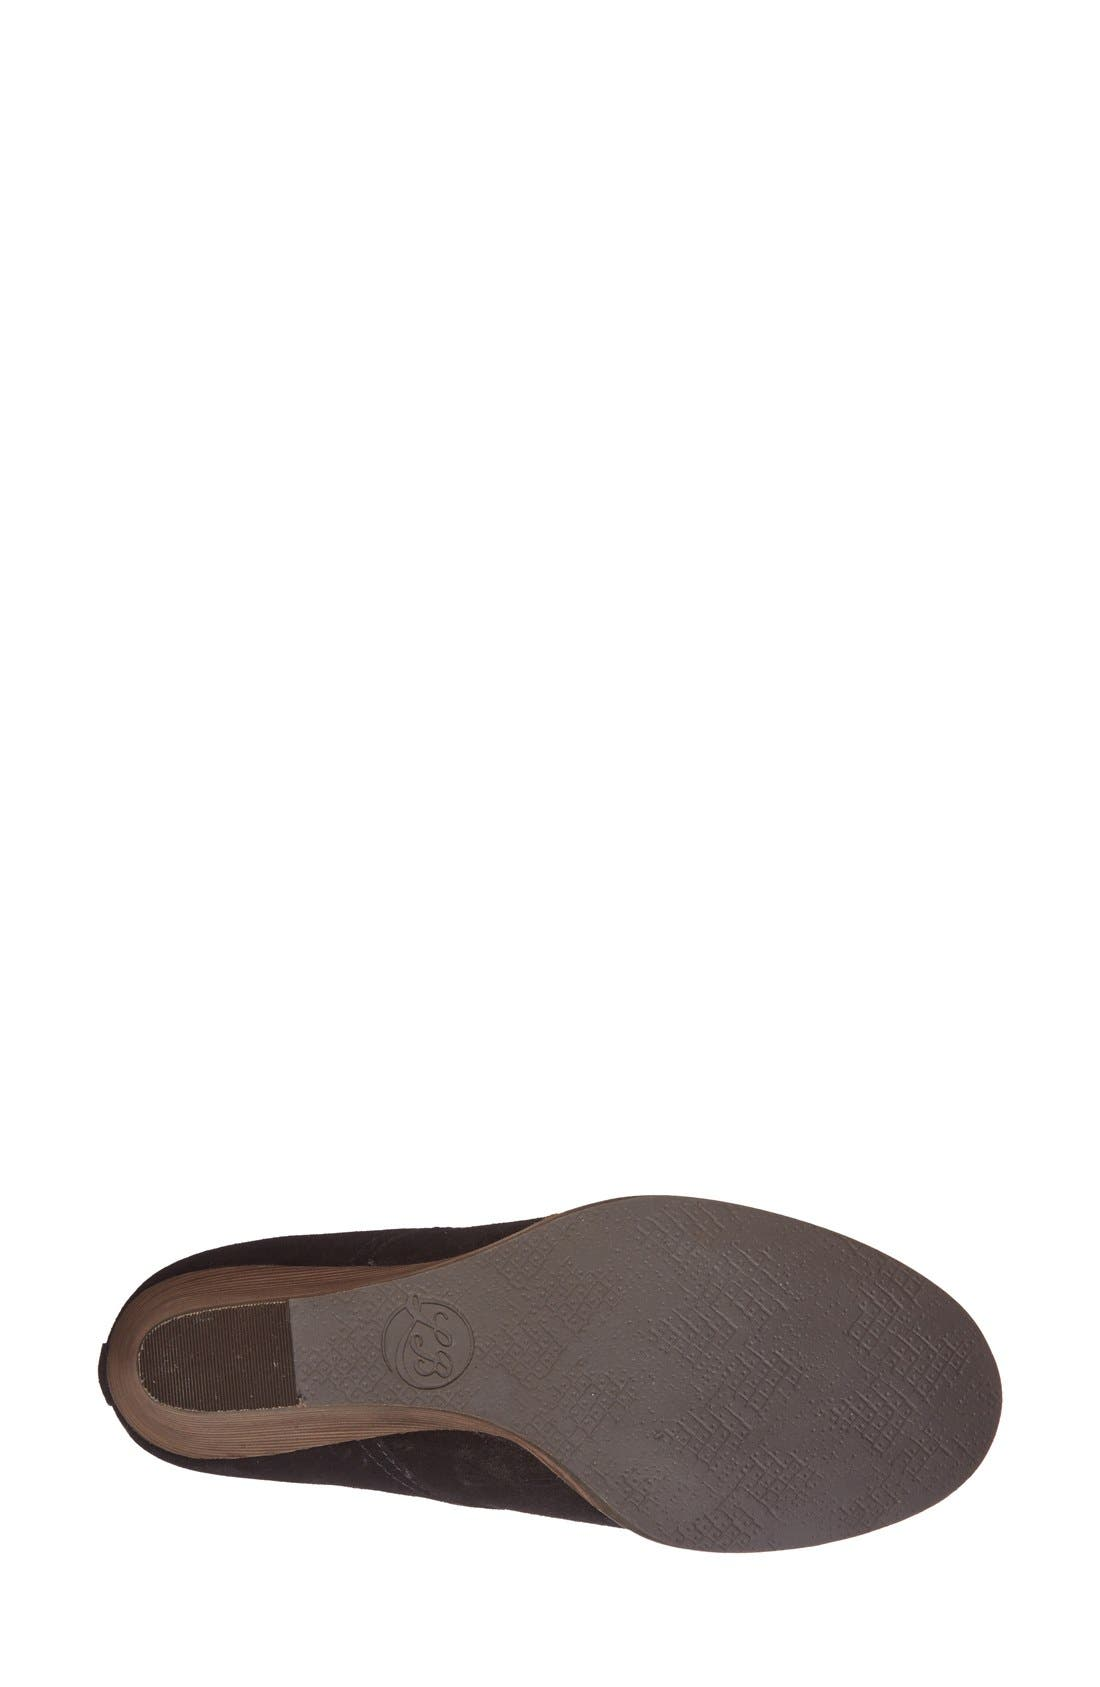 'Yoniana' Wedge Bootie,                             Alternate thumbnail 6, color,